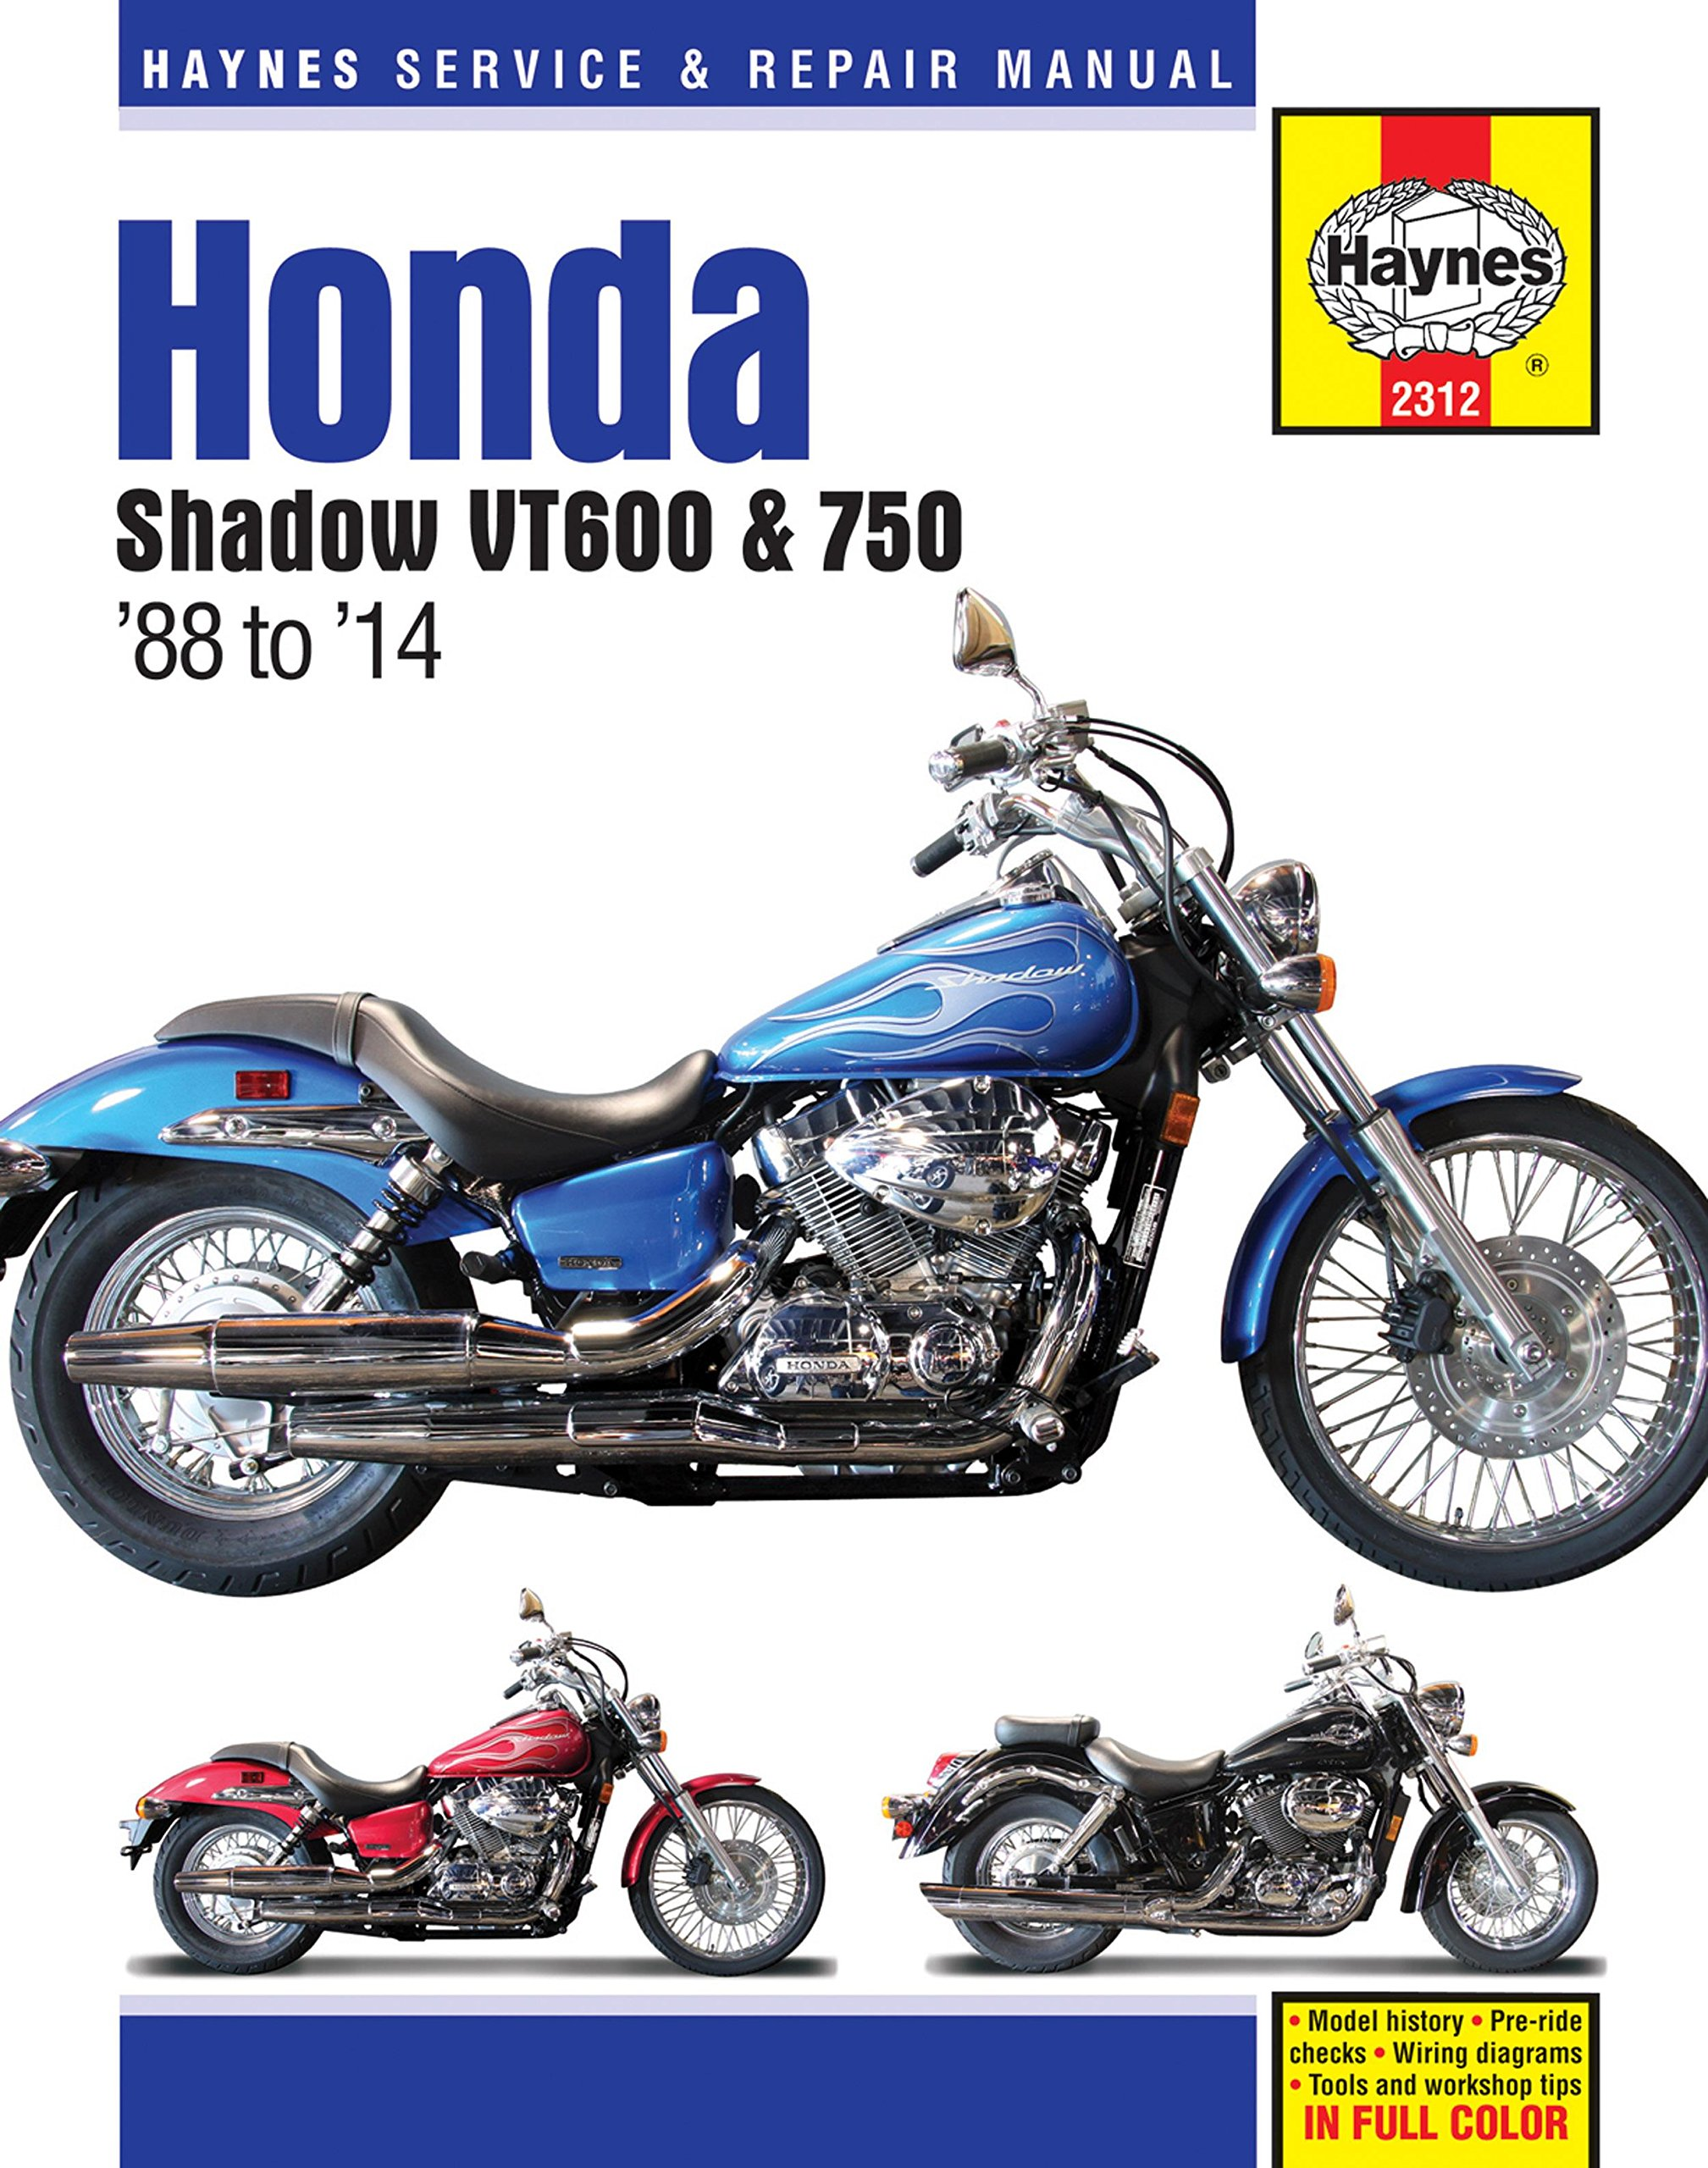 1992 Honda Shadow Wiring Diagram Data Vt 1100 Parts Amazon Com Vt1100